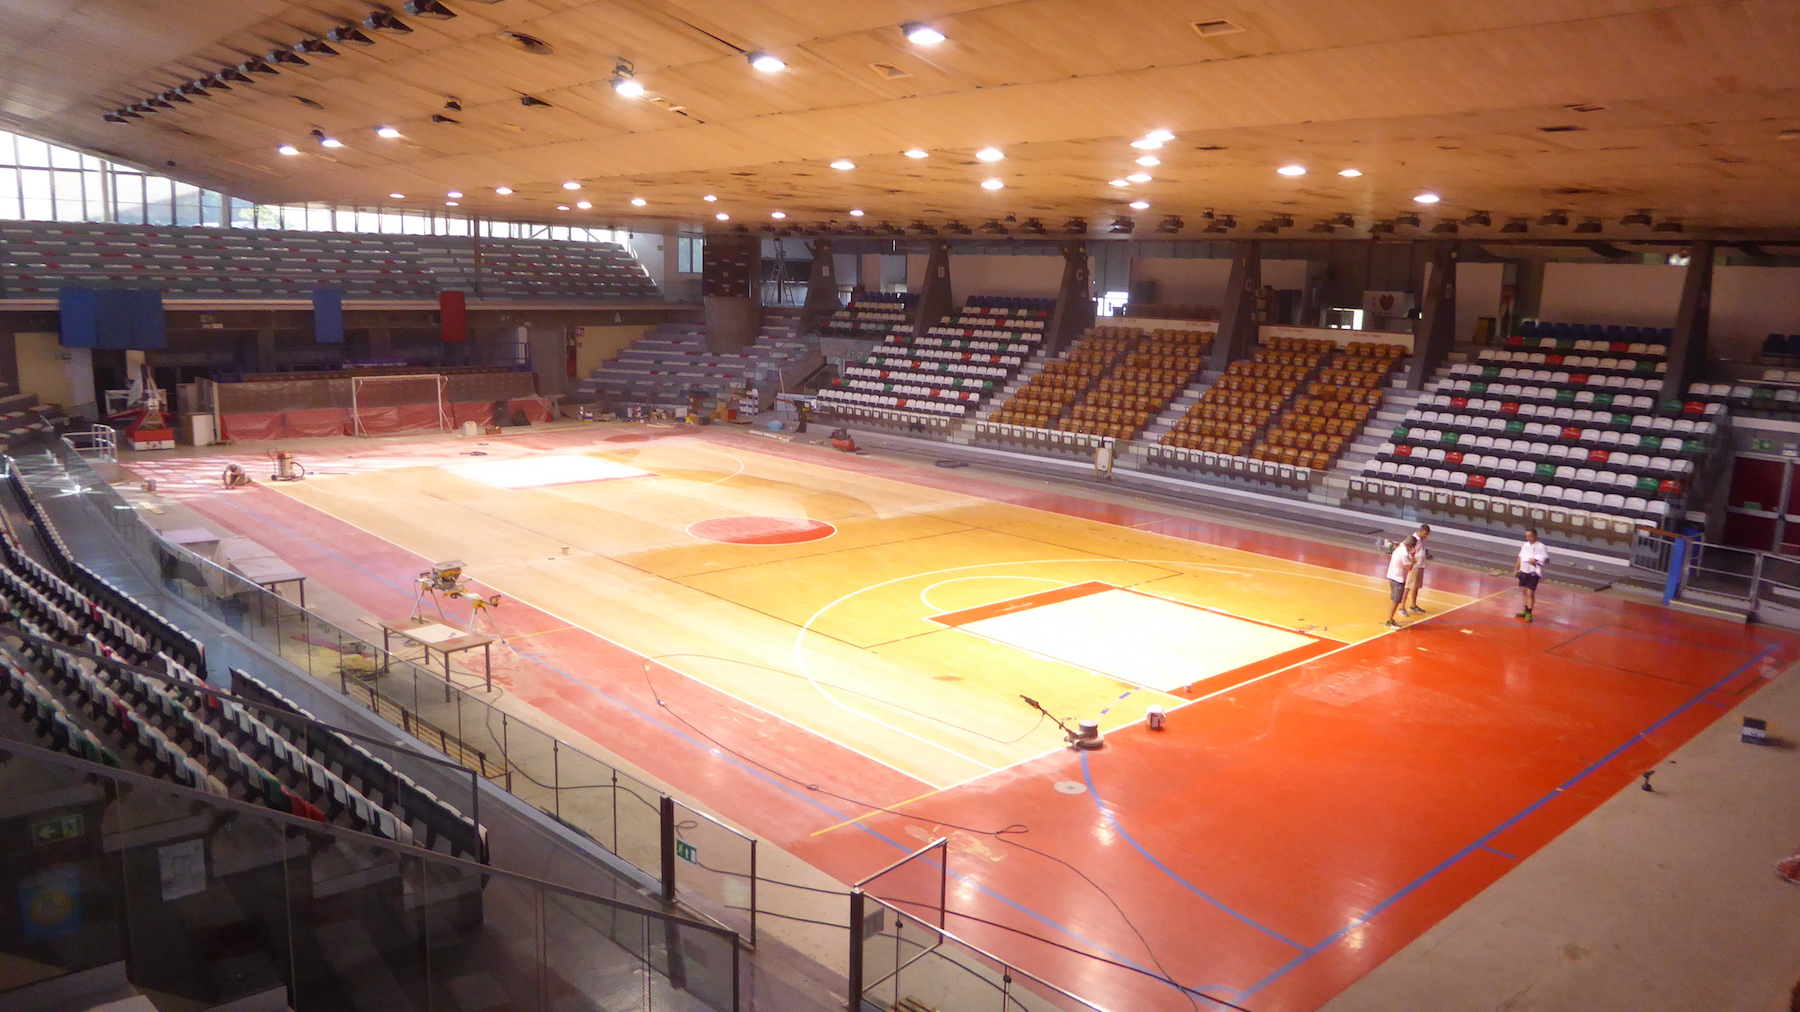 The sports facility during total maintenance